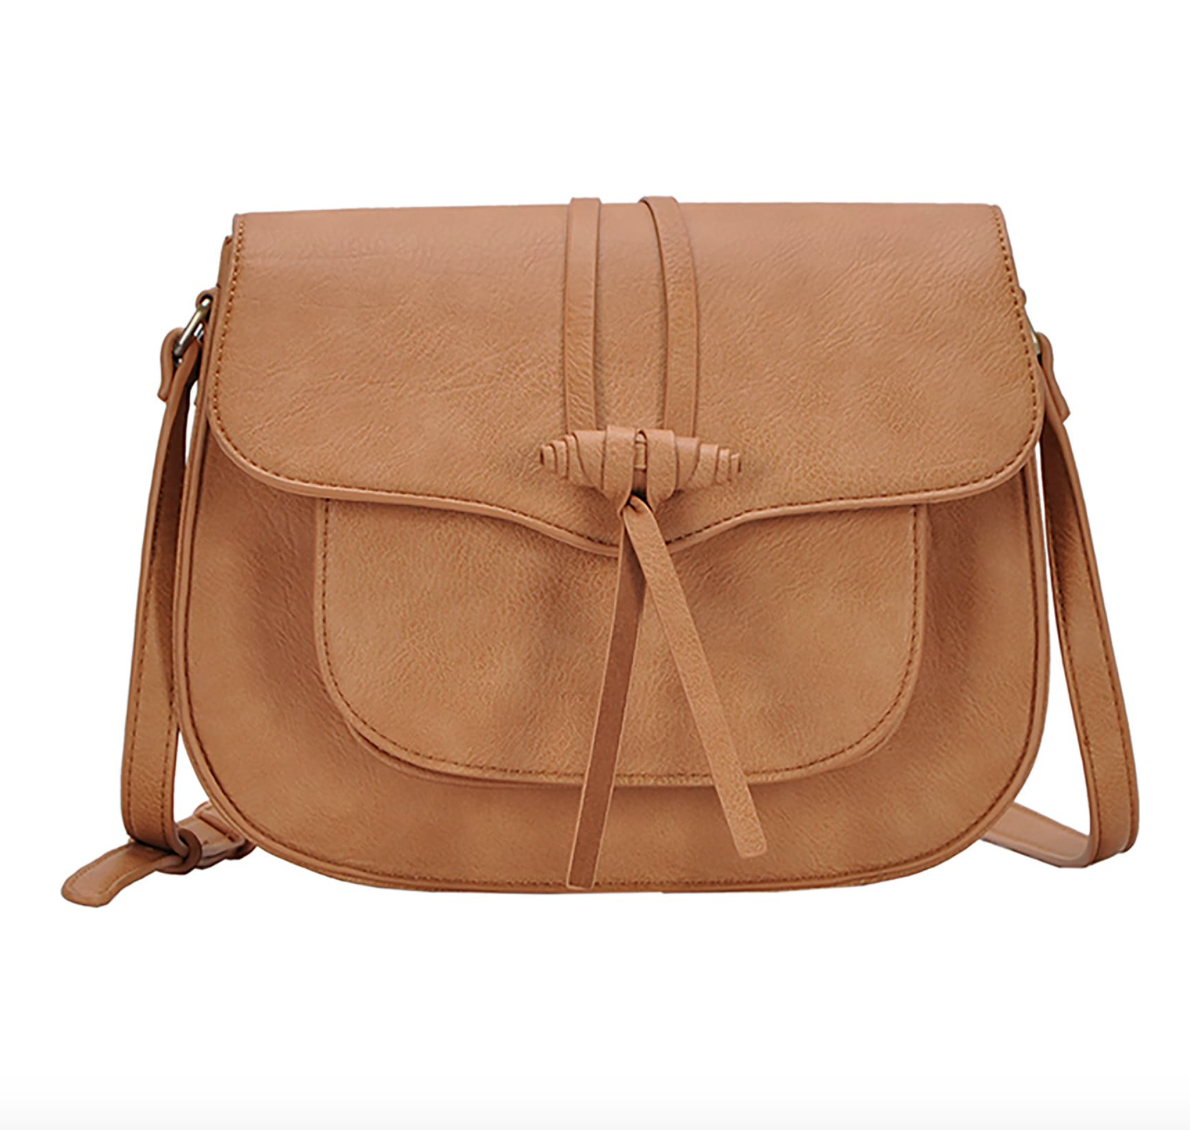 Leather Saddle Bag $48